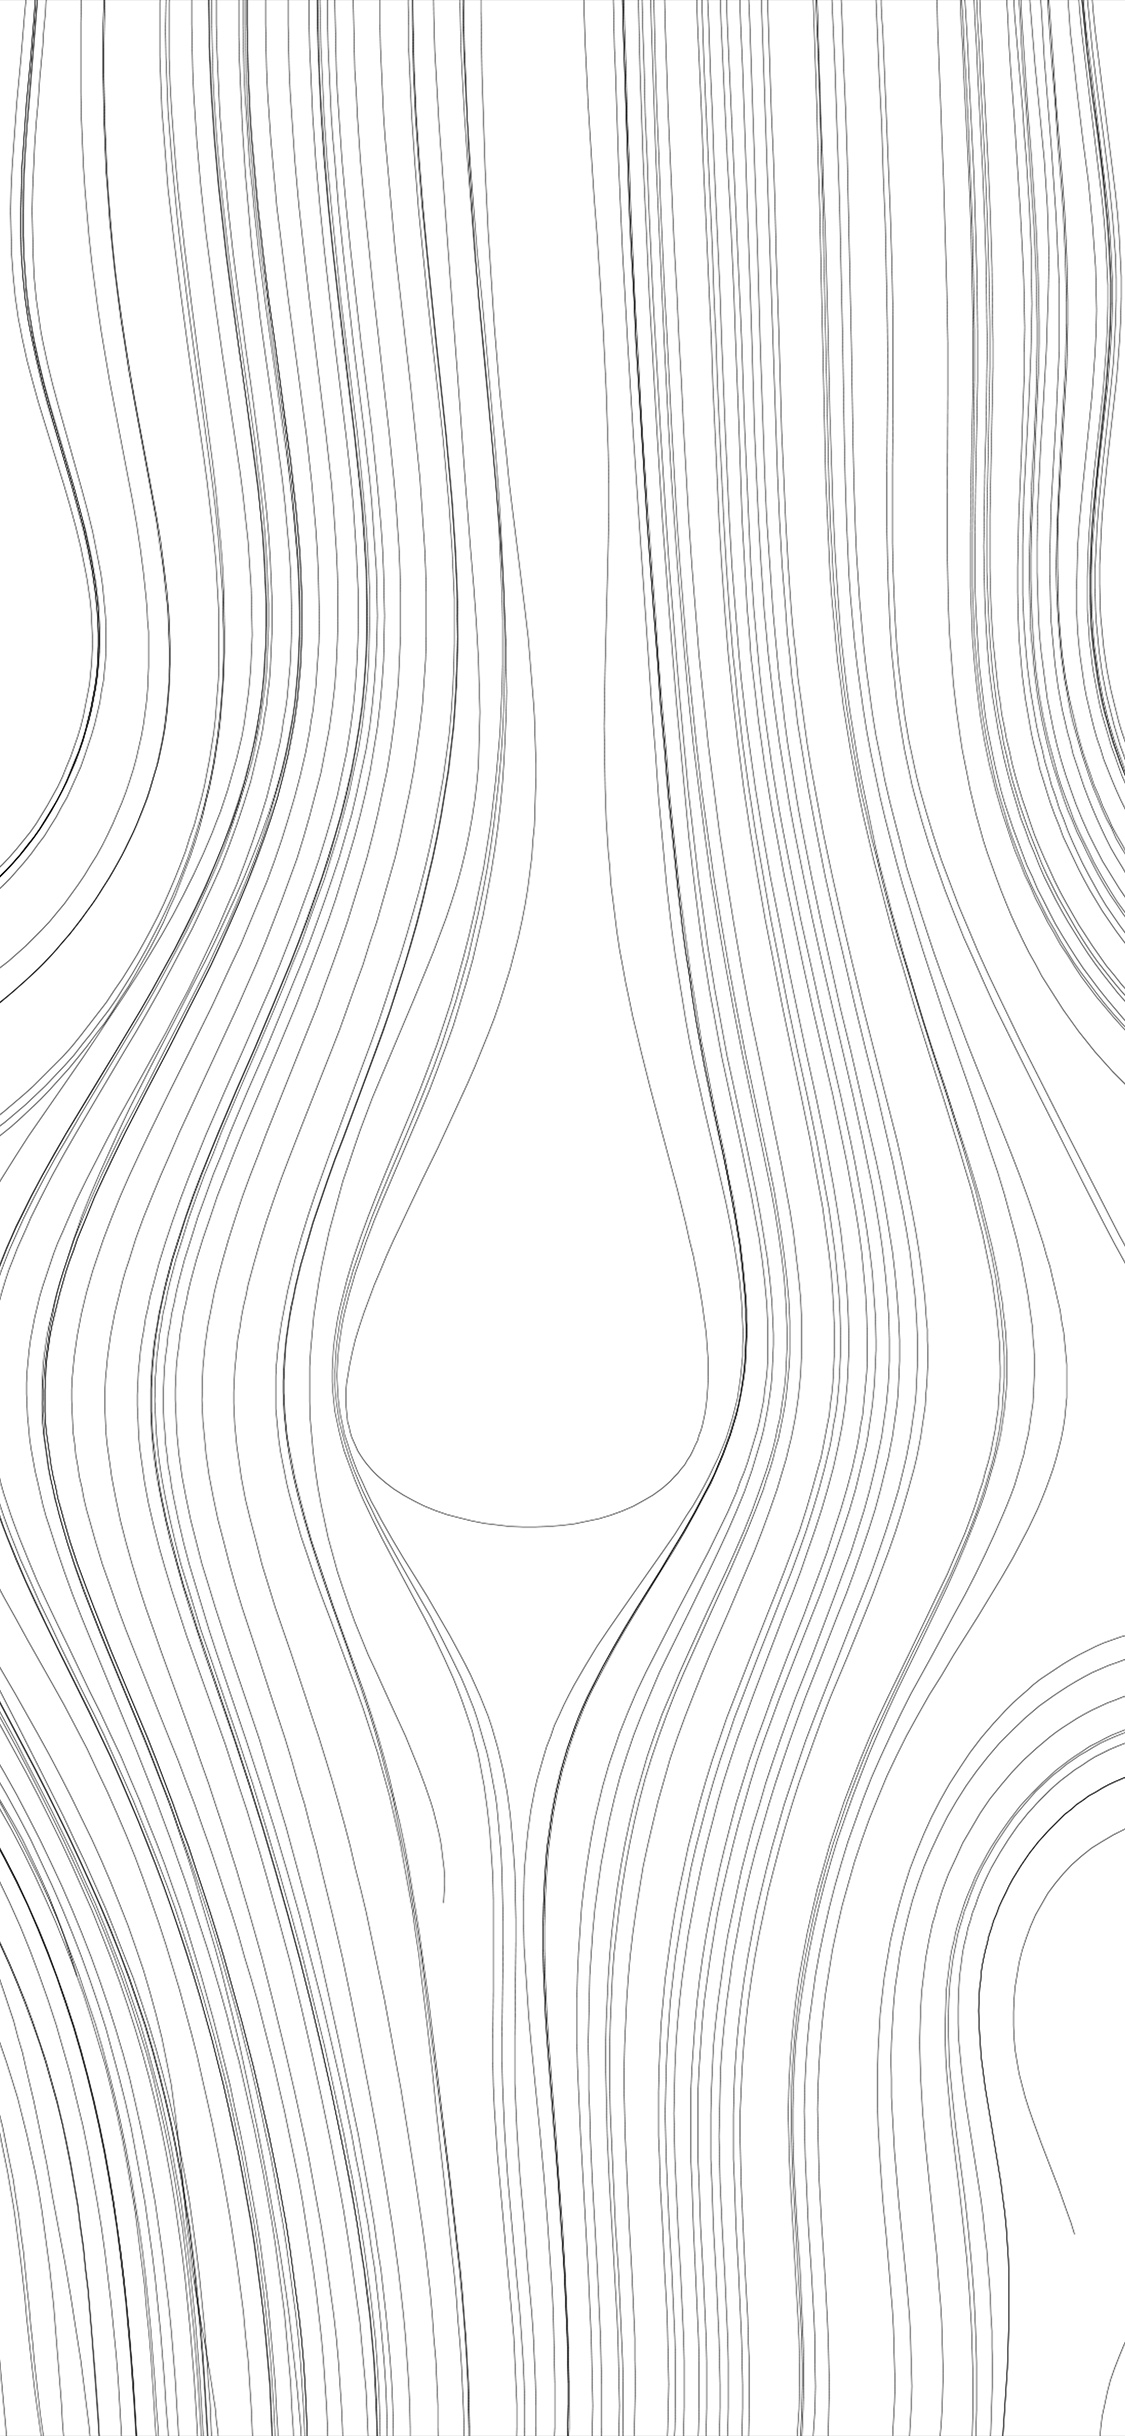 Vn89 Lines Curve White Bw Pattern Wallpaper